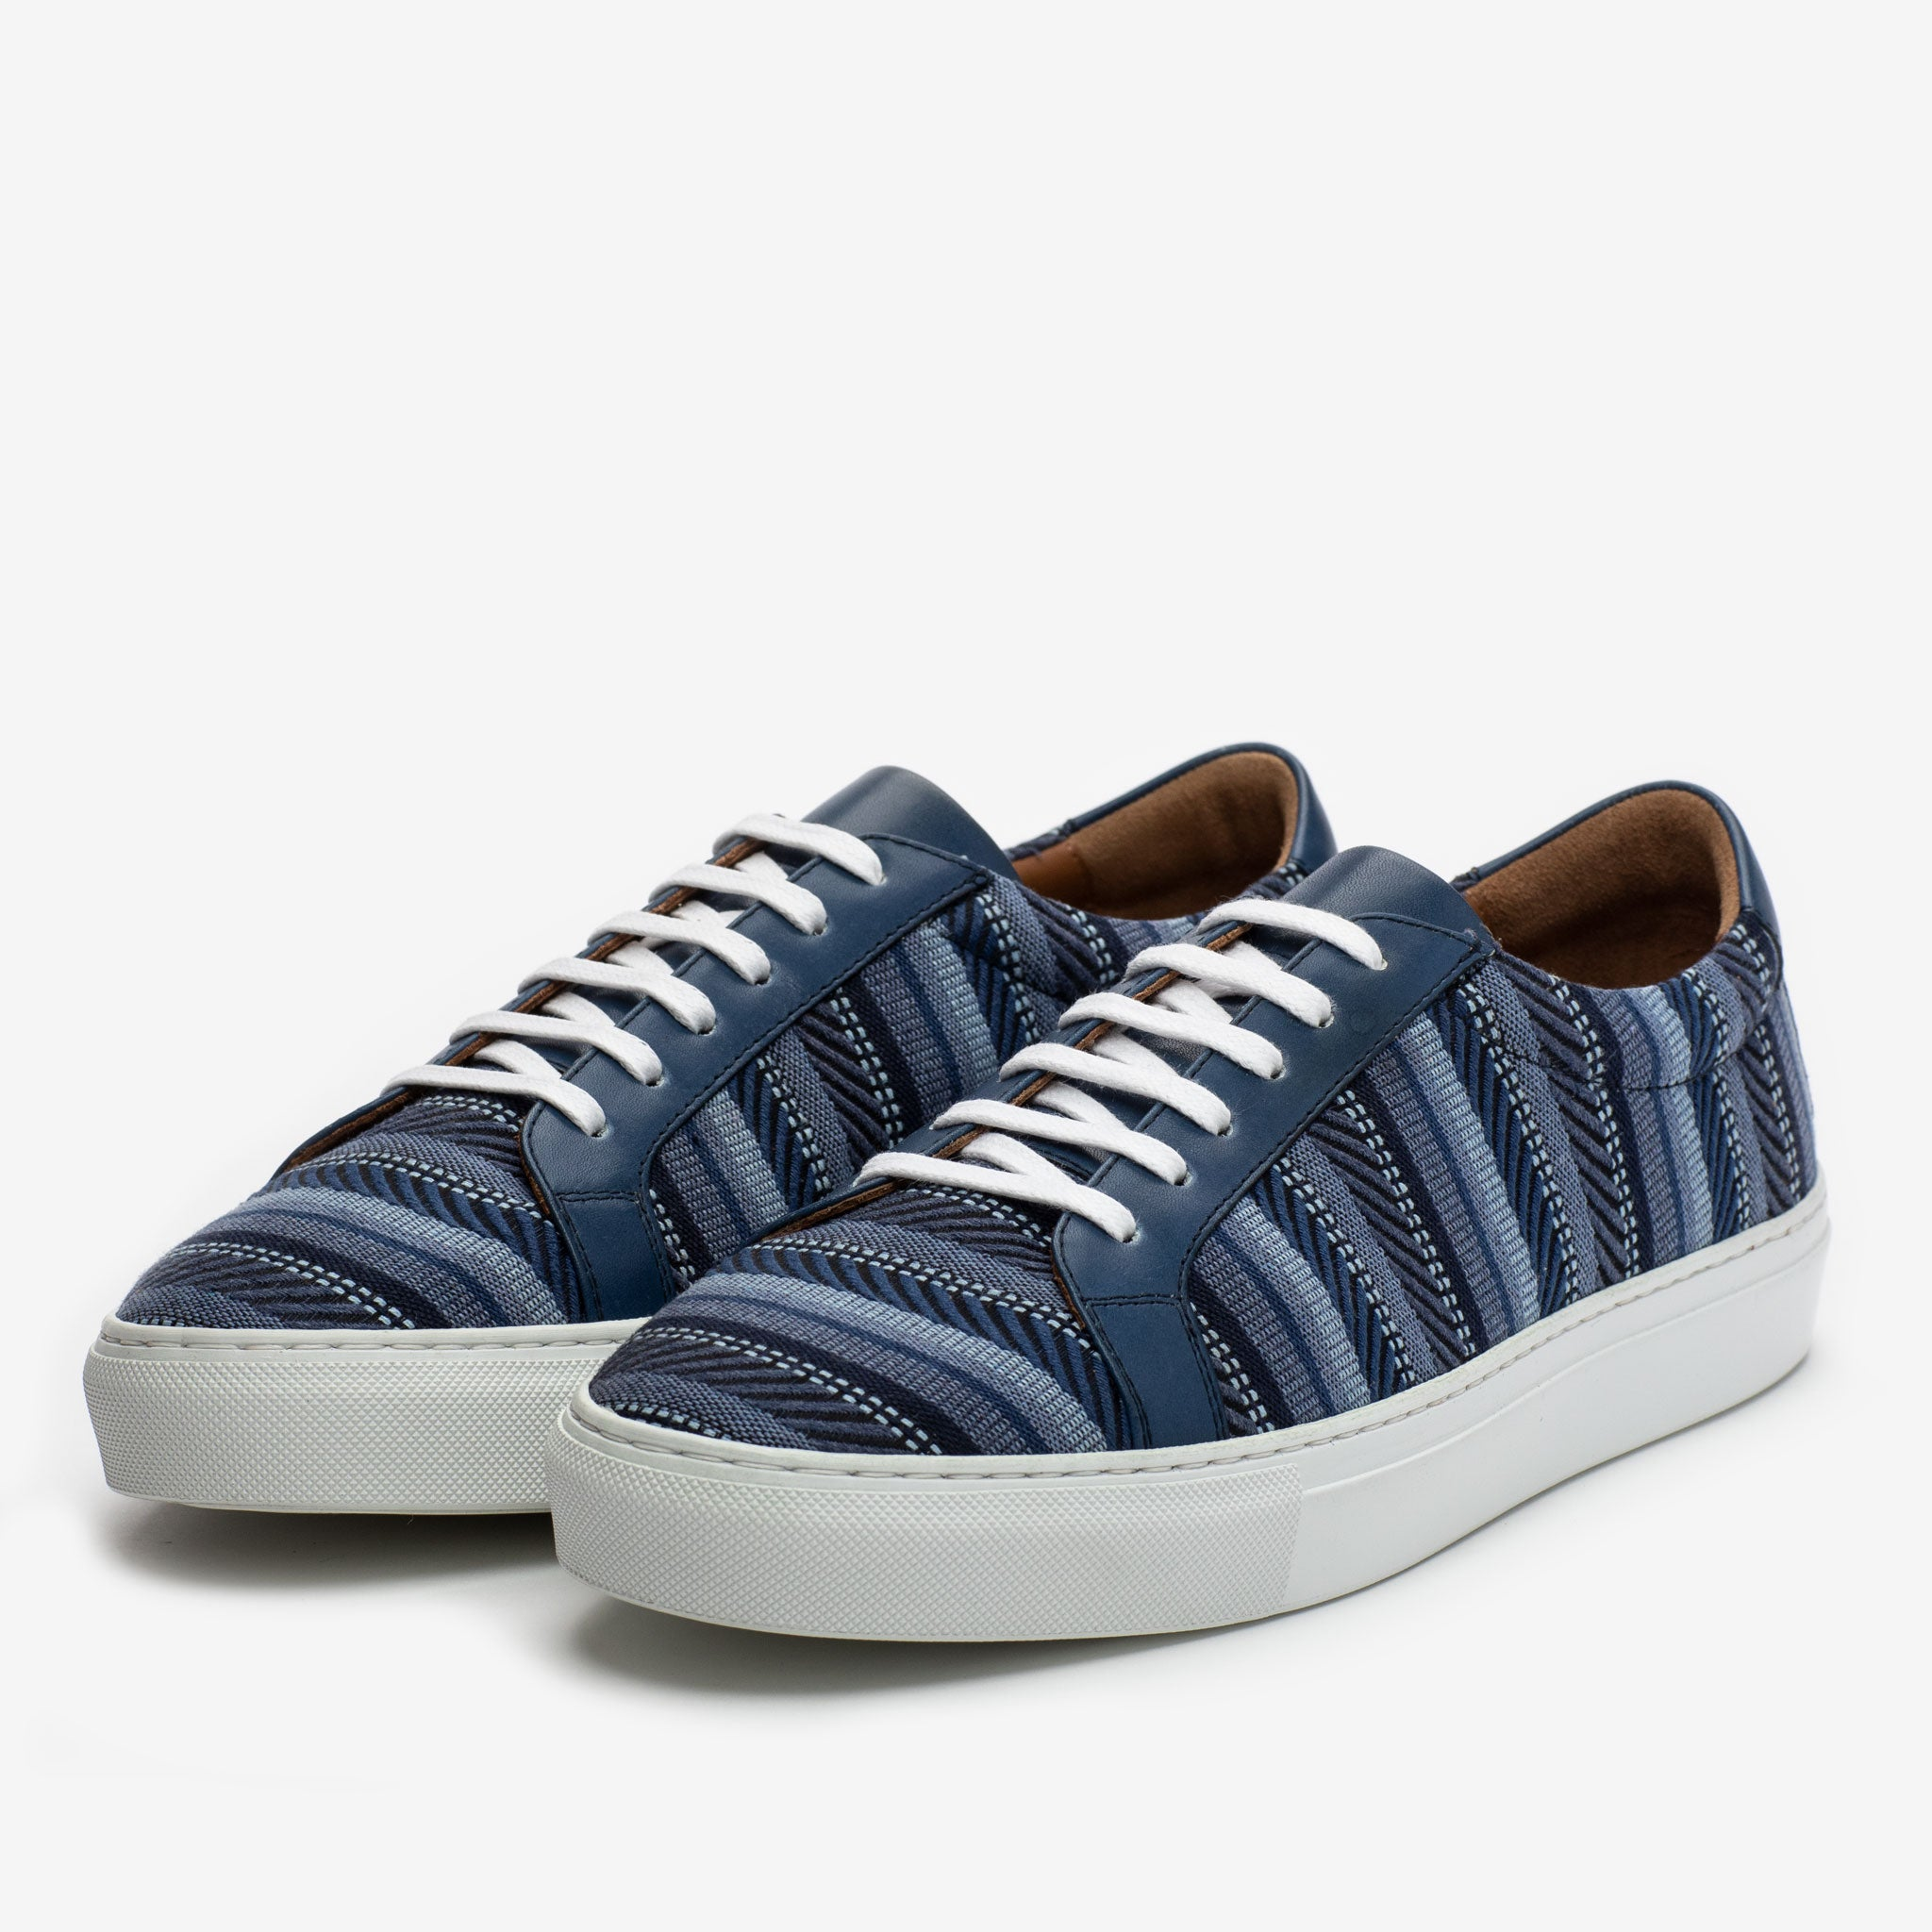 The Sneaker in Blue Stripes side view